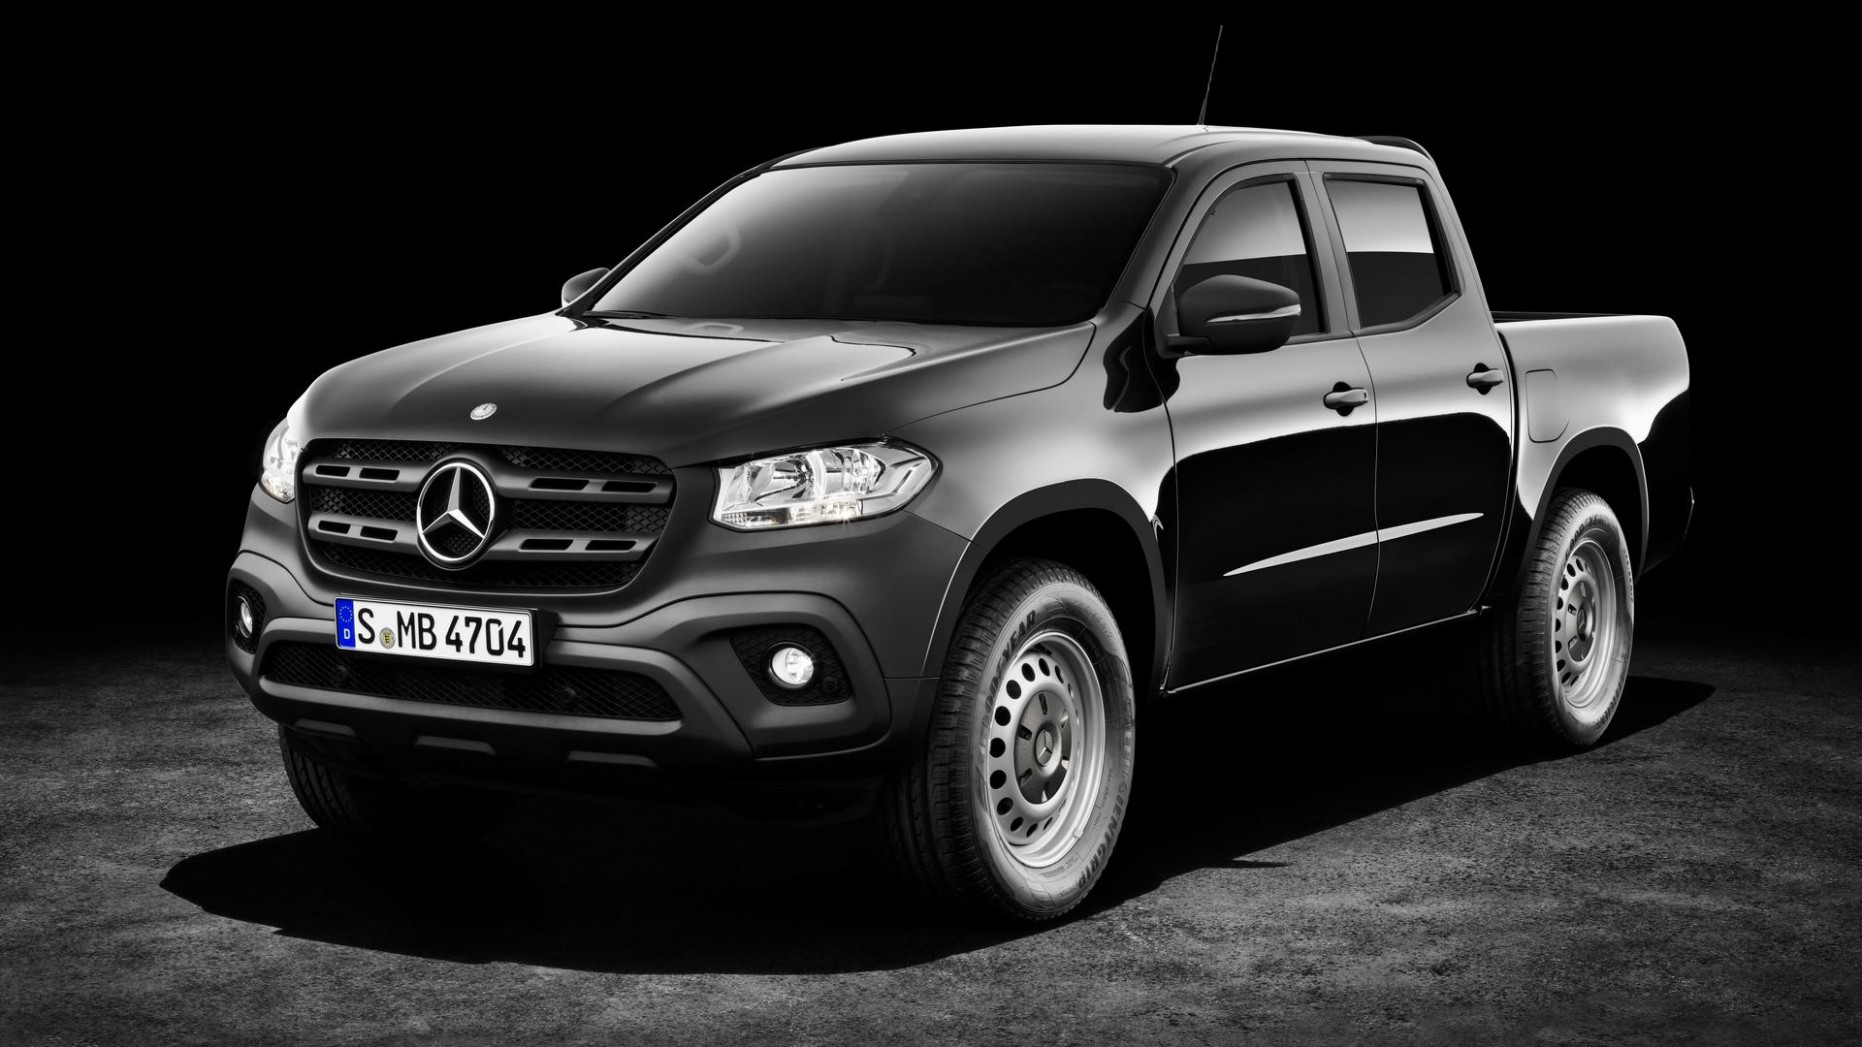 Mercedes X-Class To Be Discontinued, Says Report - 2020 mercedes ute price